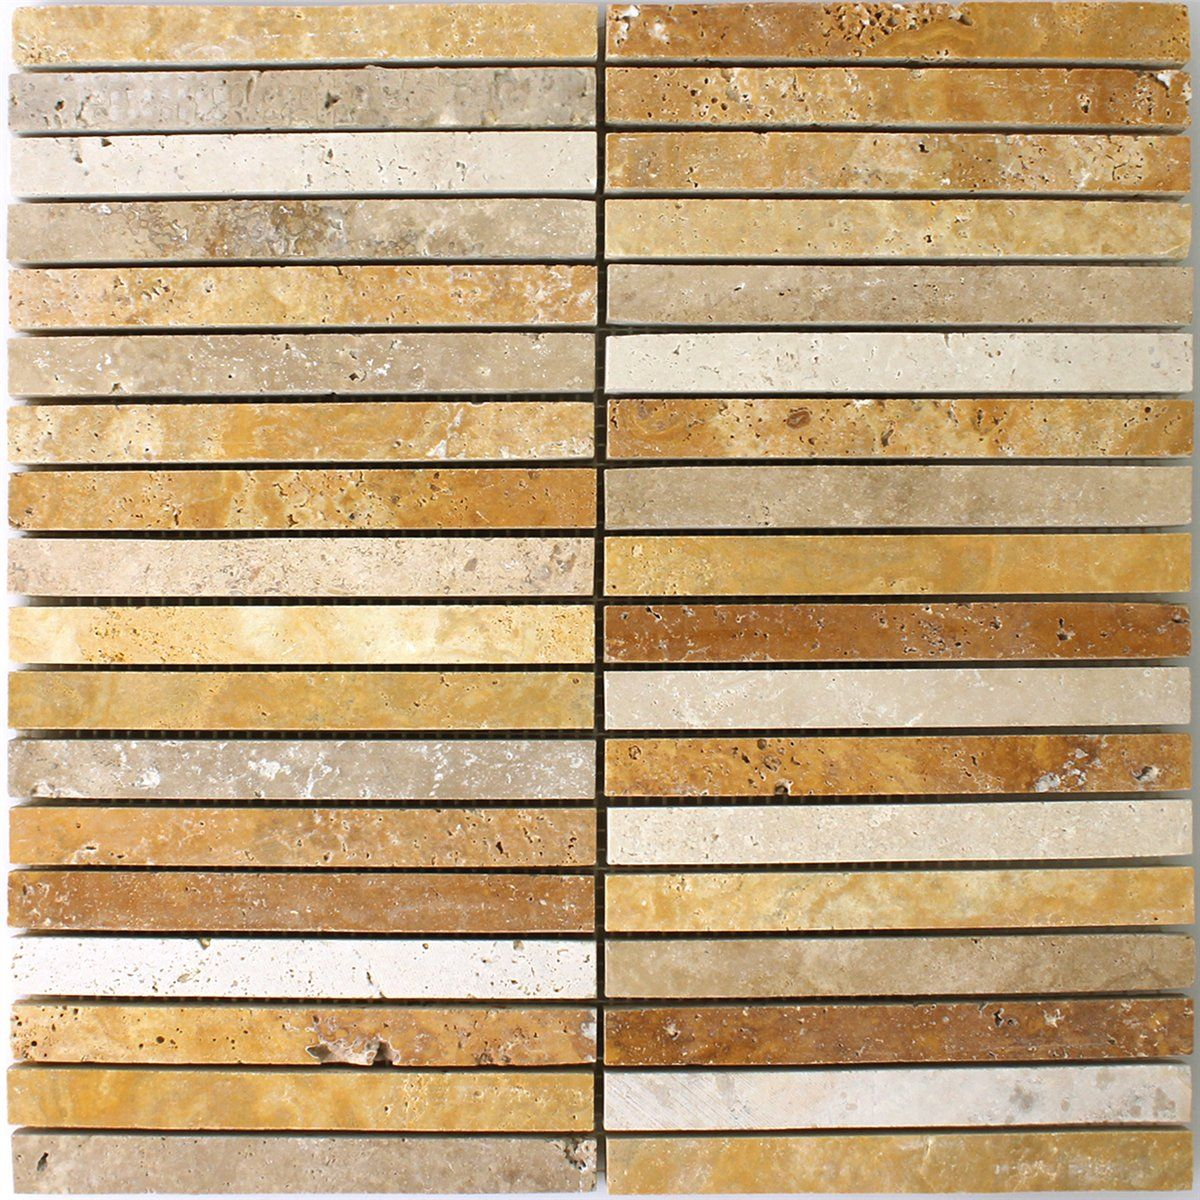 Travertin Mosaik Braun Beige Rot 15x151x10mm